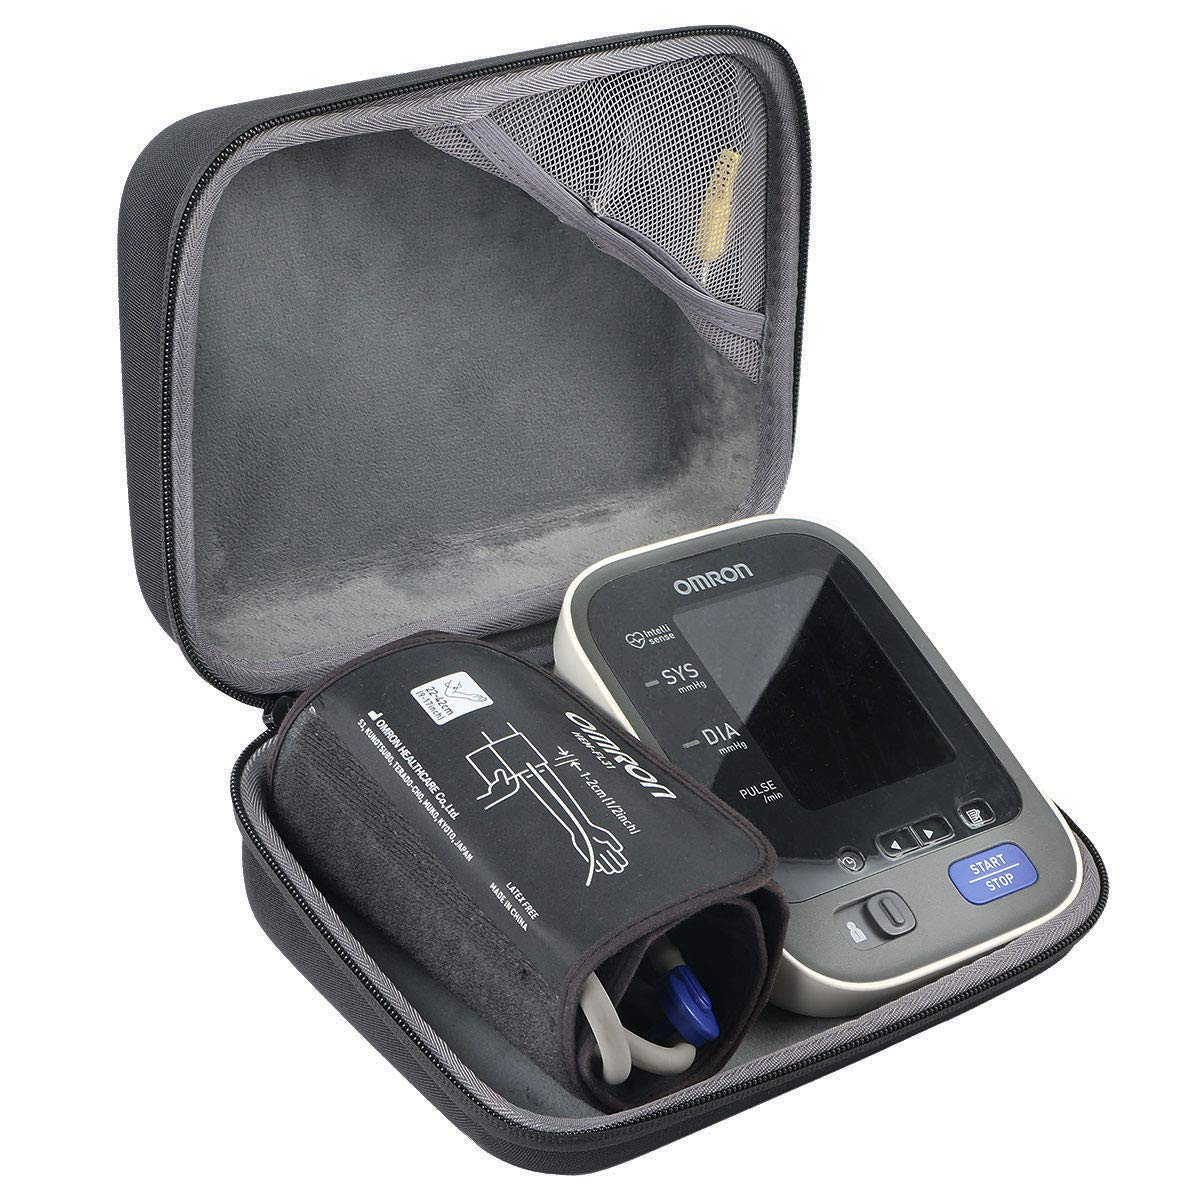 co2crea Hard Travel case for Omron 10 Series BP785N BP786 BP786N Upper Arm Blood Pressure Monitor Cuff